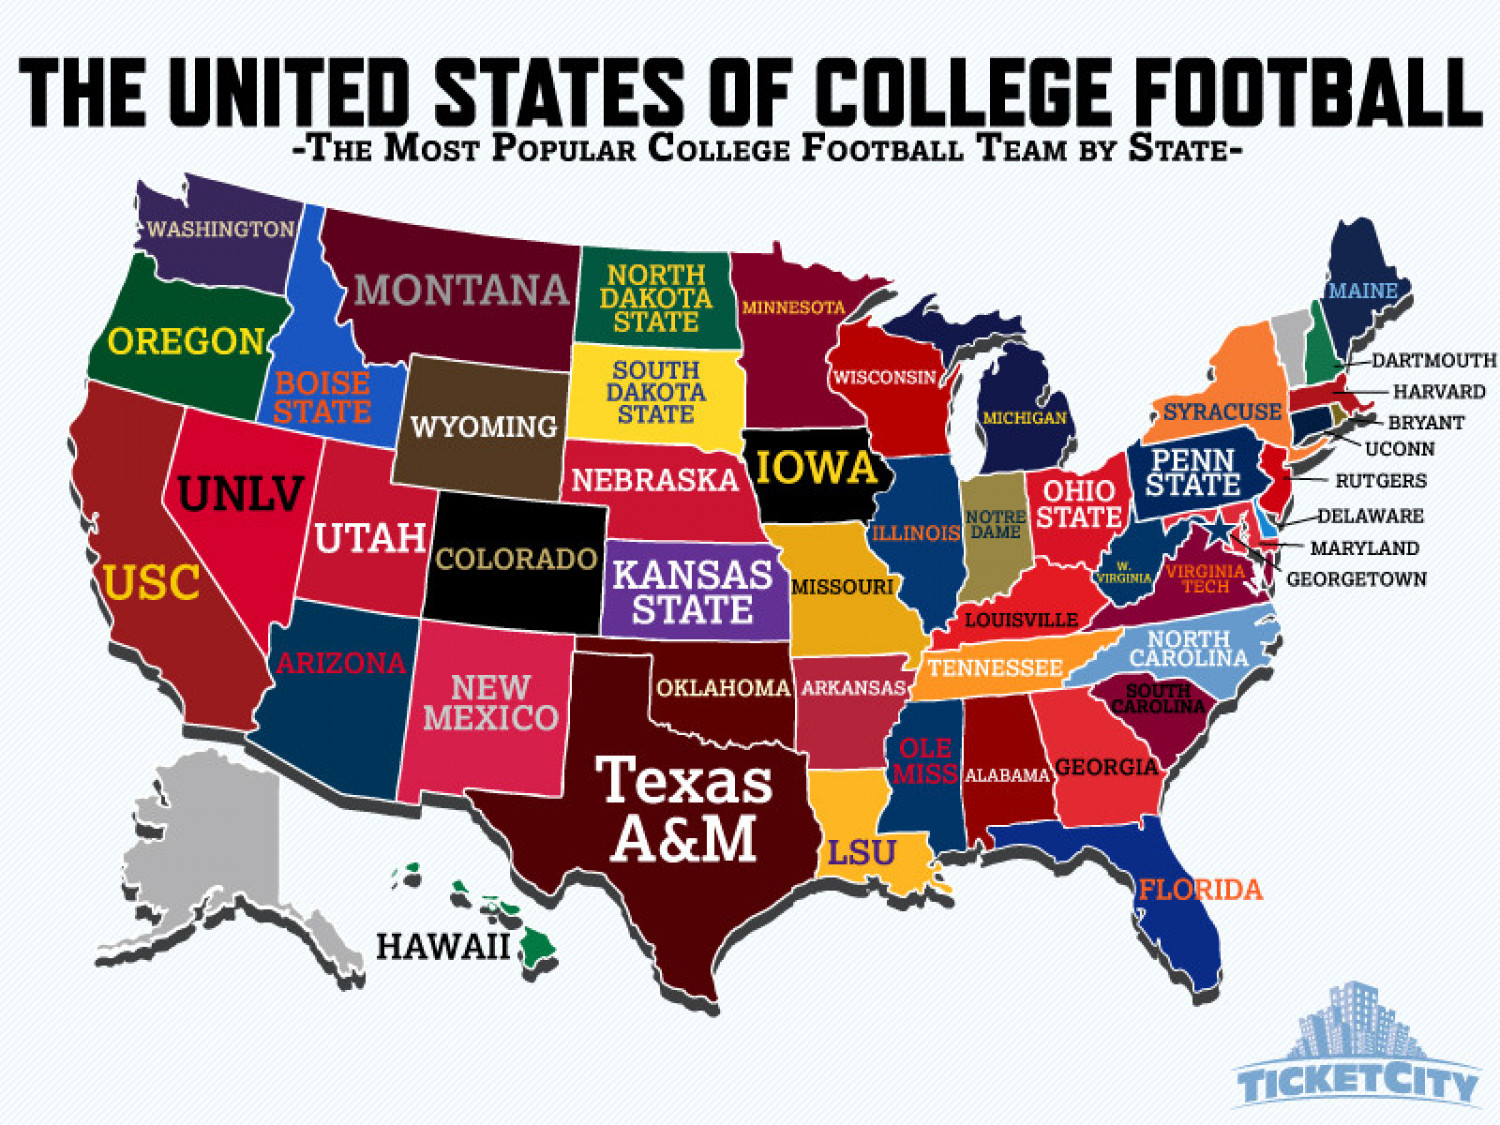 United States of College Football Map Visually